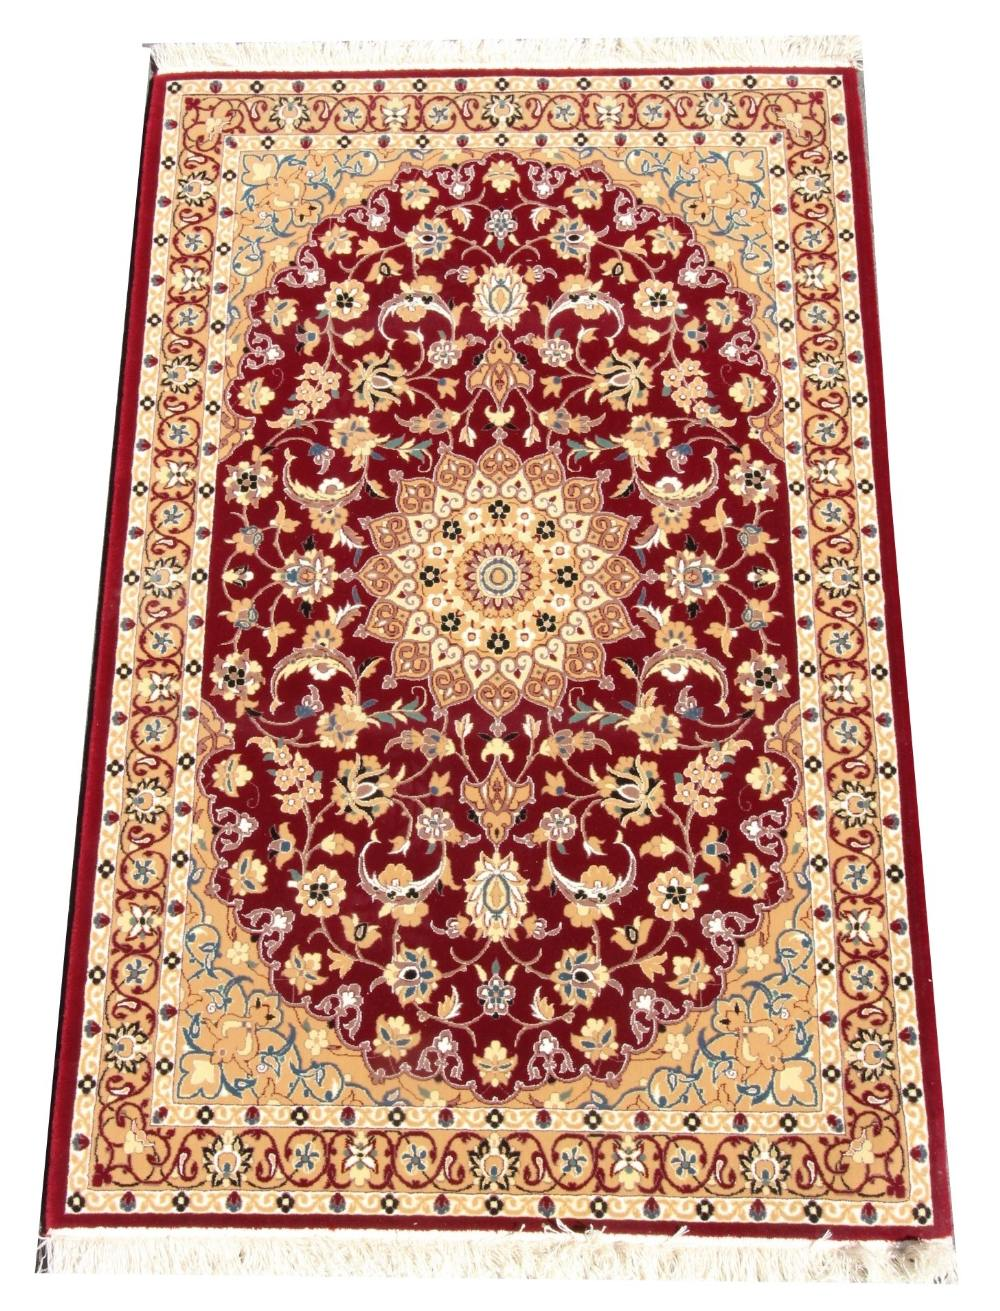 A fine woven thick pile rug, the rich red ground with lozenge Shabas medallion design, 162cm x 100cm